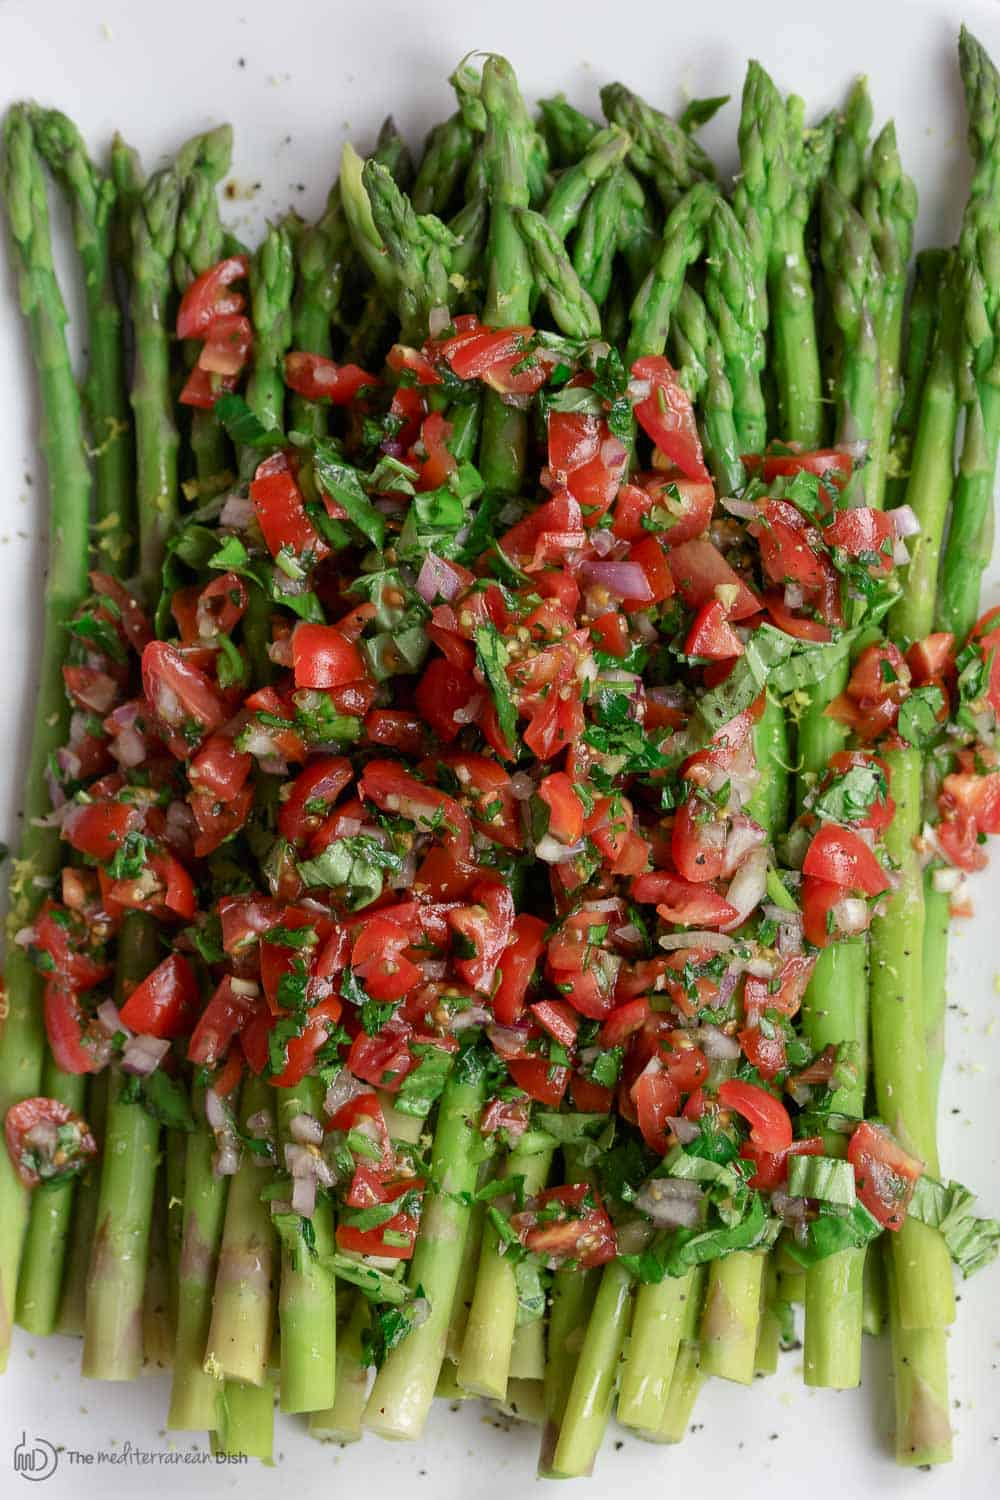 Easy Asparagus Recipe with Mediterranean Salsa | The Mediterranean Dish. Give asparagus a quick blanch, then top with this amazing Mediterranean salsa. Tons of flavor and texture! Serve as an appetizer, side, or Asparagus salad! Recipe from TheMediterraneanDish.com #asparagus #asparagusrecipe #mediterraneandiet #mediterraneanrecipe #mediterranean #mediterraneanfood #glutenfreerecipe #easyrecipe #sidedish #mediterraneansalad #healthyrecipes #veganrecipes